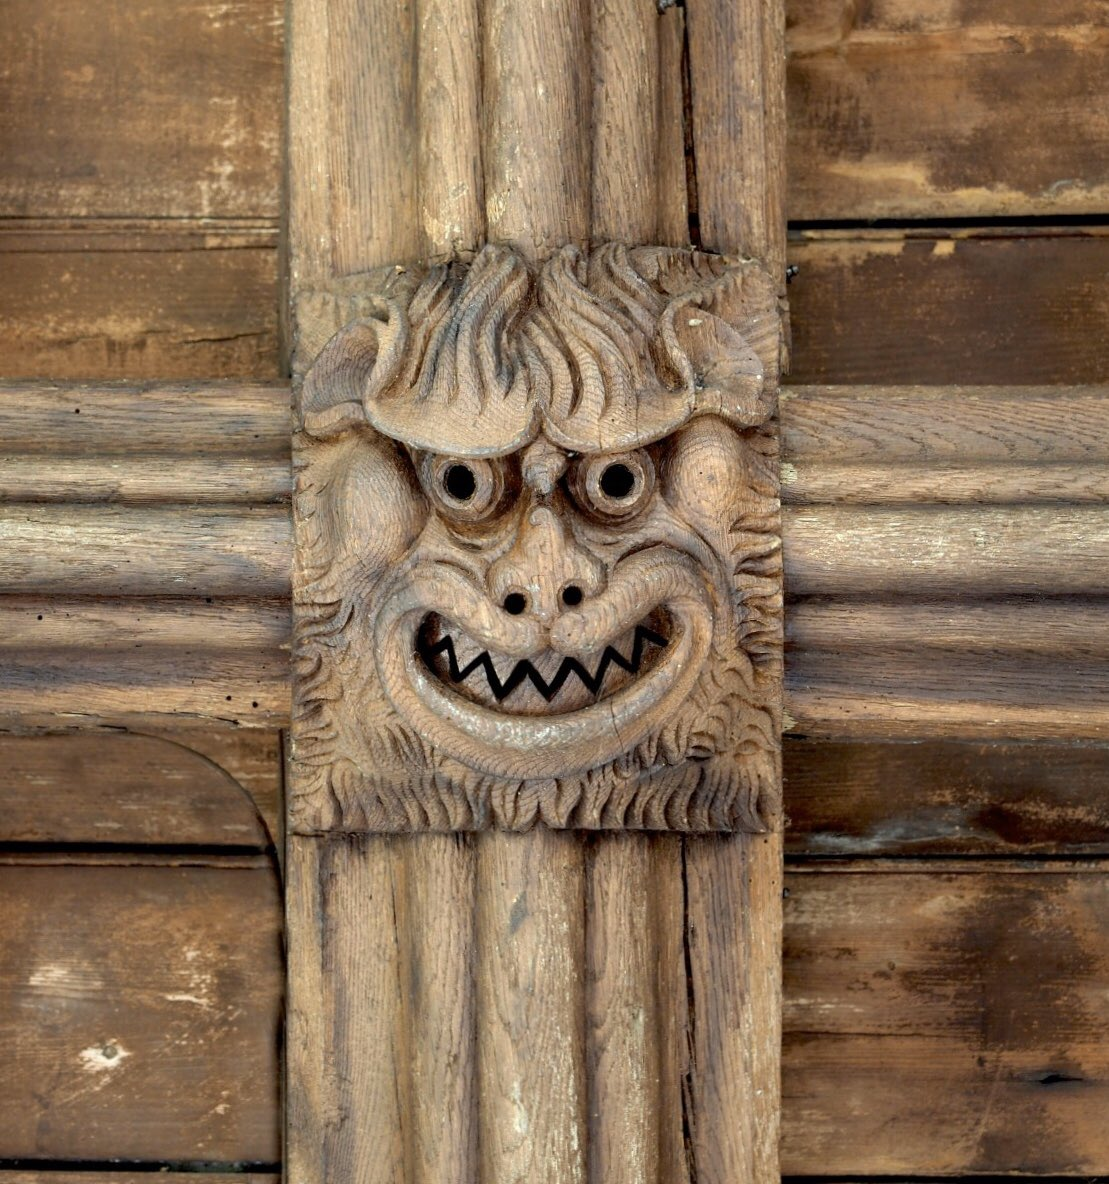 #DecemberDevils from St Mary's, Fowlmere, Cambs  (ironically, the village where our new MP comes from) <br>http://pic.twitter.com/EvmckoTmcW